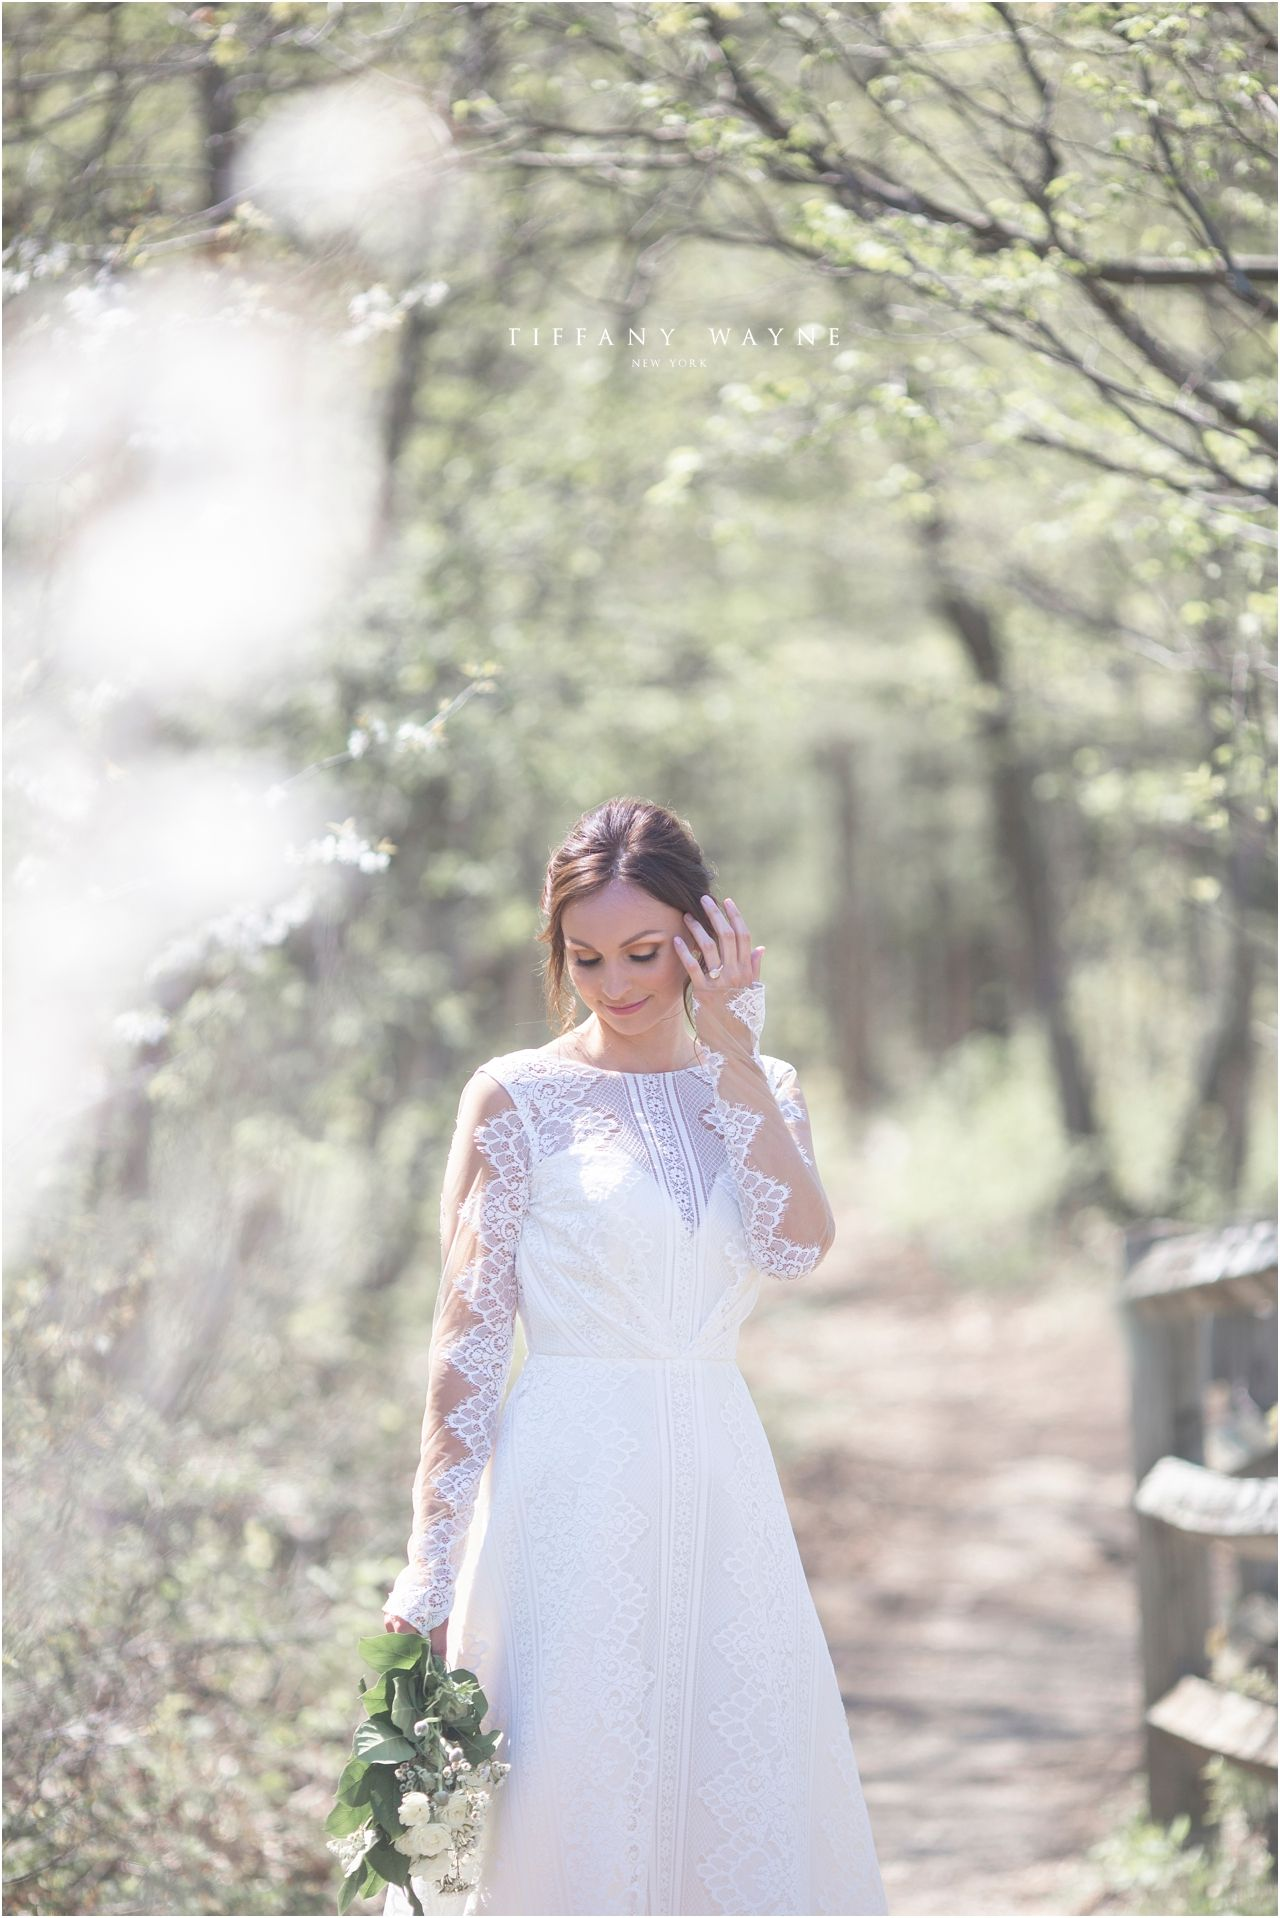 Outdoor wedding portrait in woods light and airy lace wedding